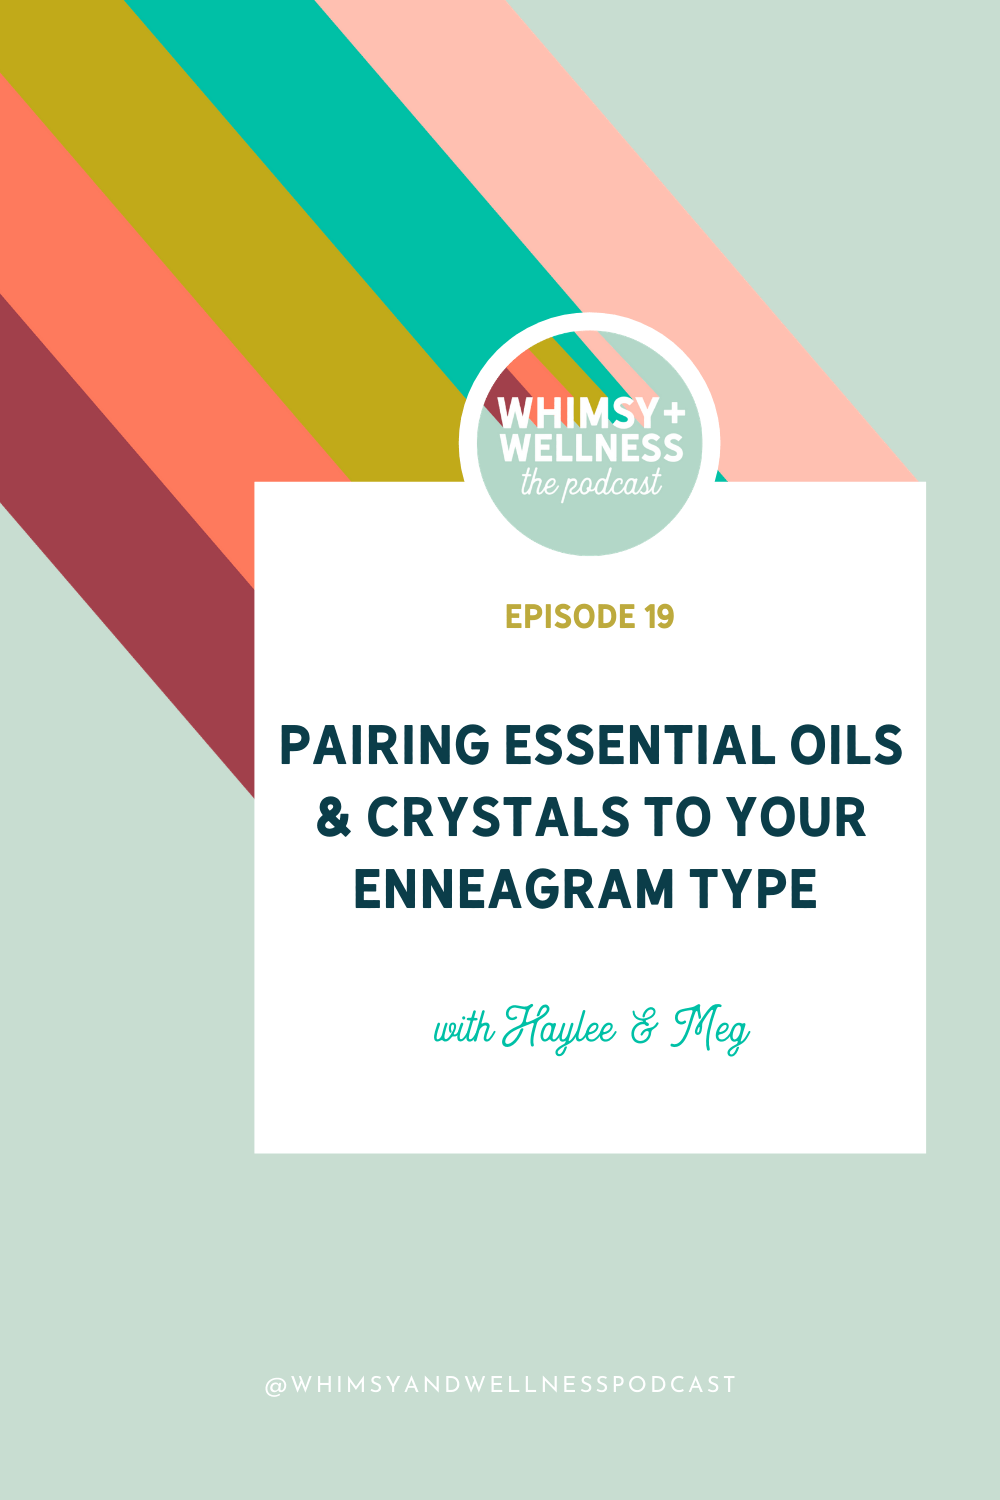 whimsy + wellness podcast ep 19 enneagram and essential oils